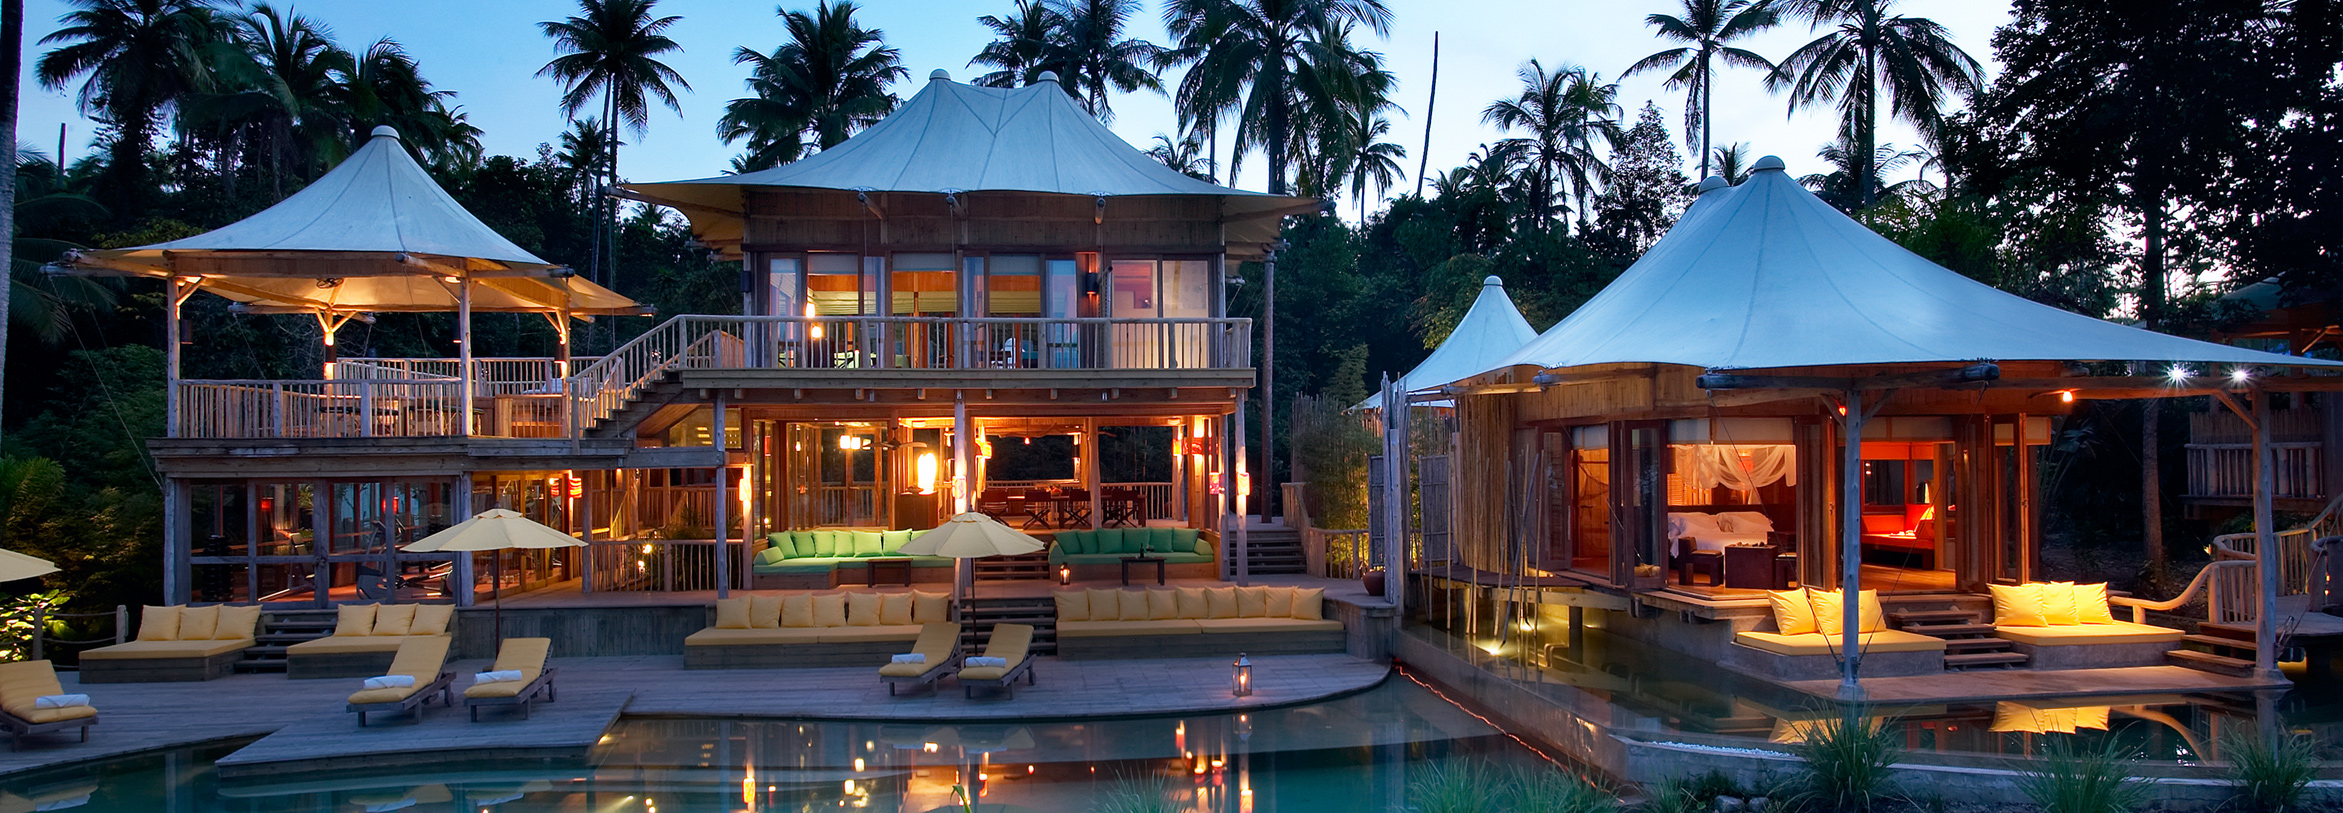 Soneva-Kiri-Thailand-Luxury-Travel-Ker-&-Downey